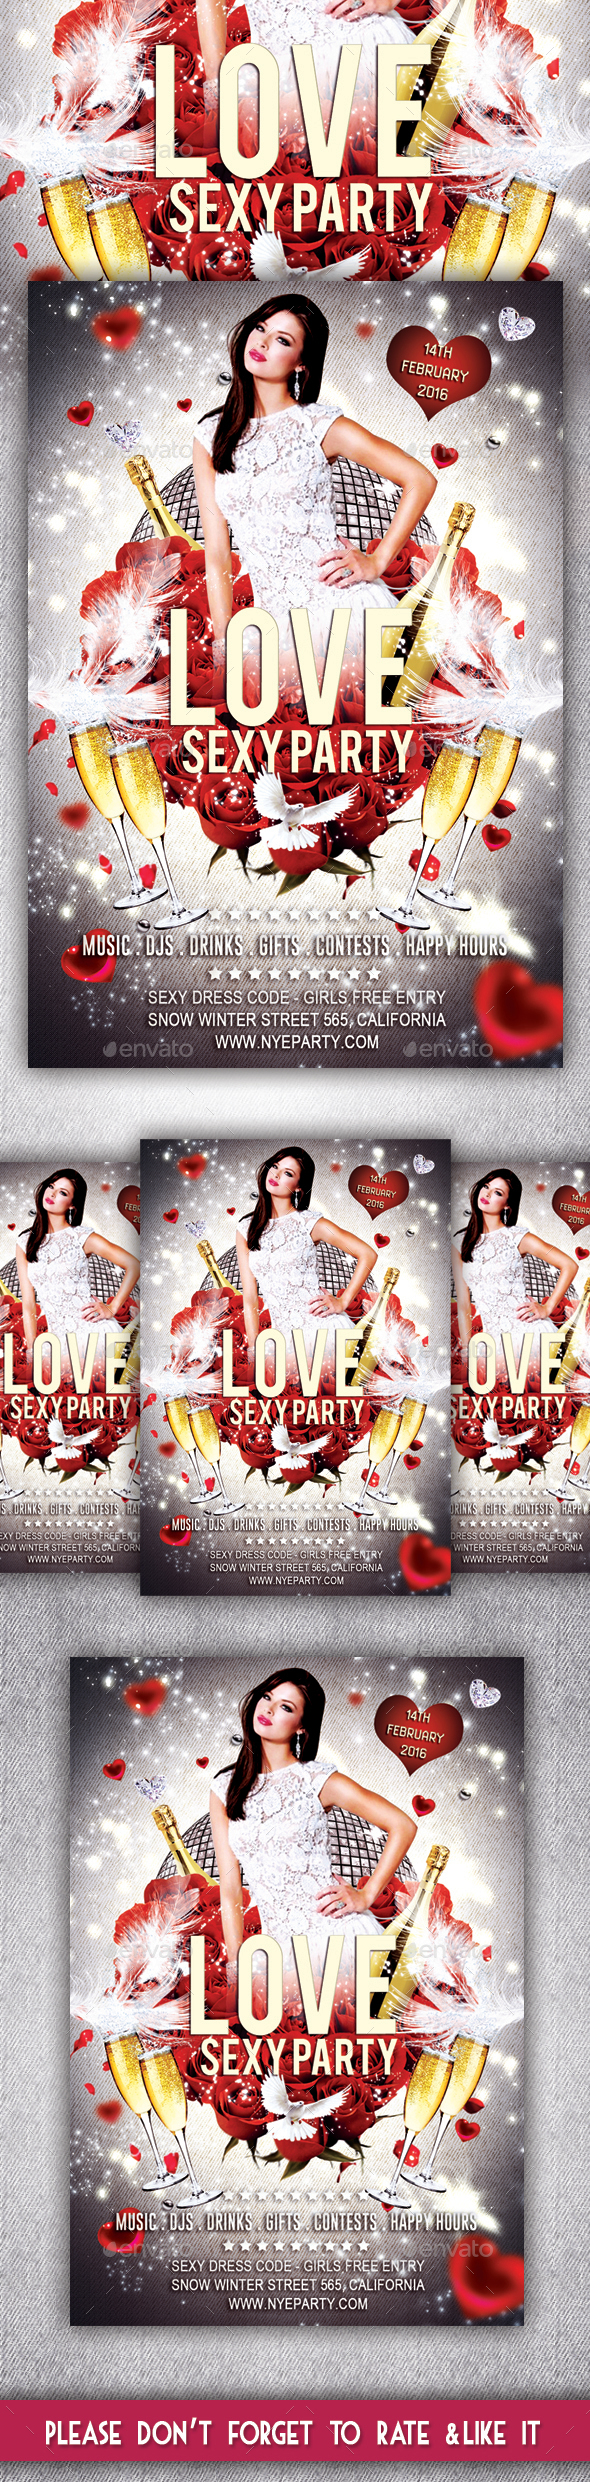 Love Sexy Party Flyer - Clubs & Parties Events